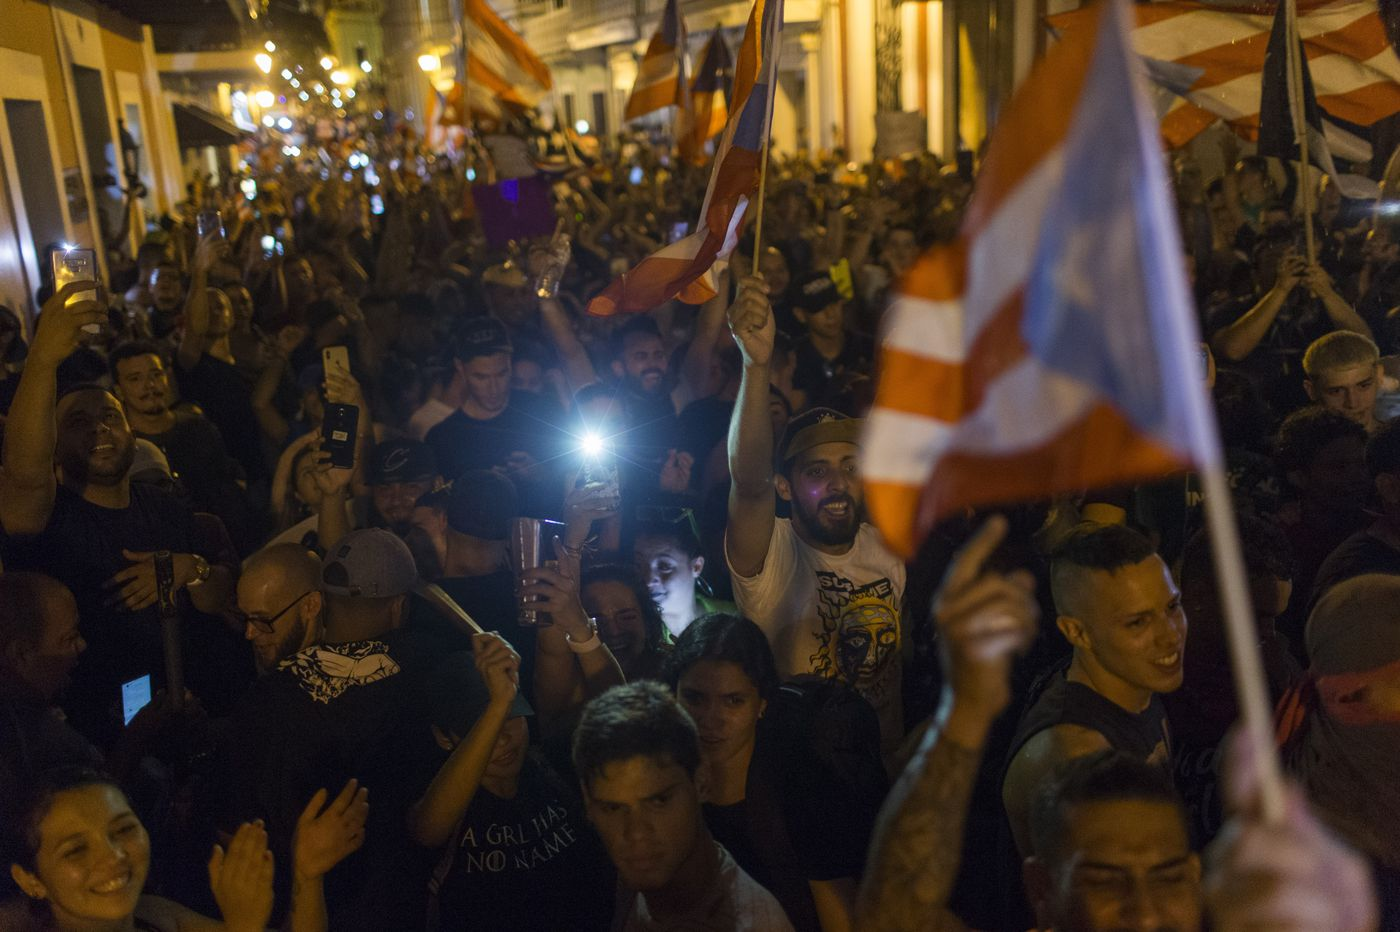 In Puerto Rico, taking it to the streets takes down a leader. Why can't that happen here? | Will Bunch